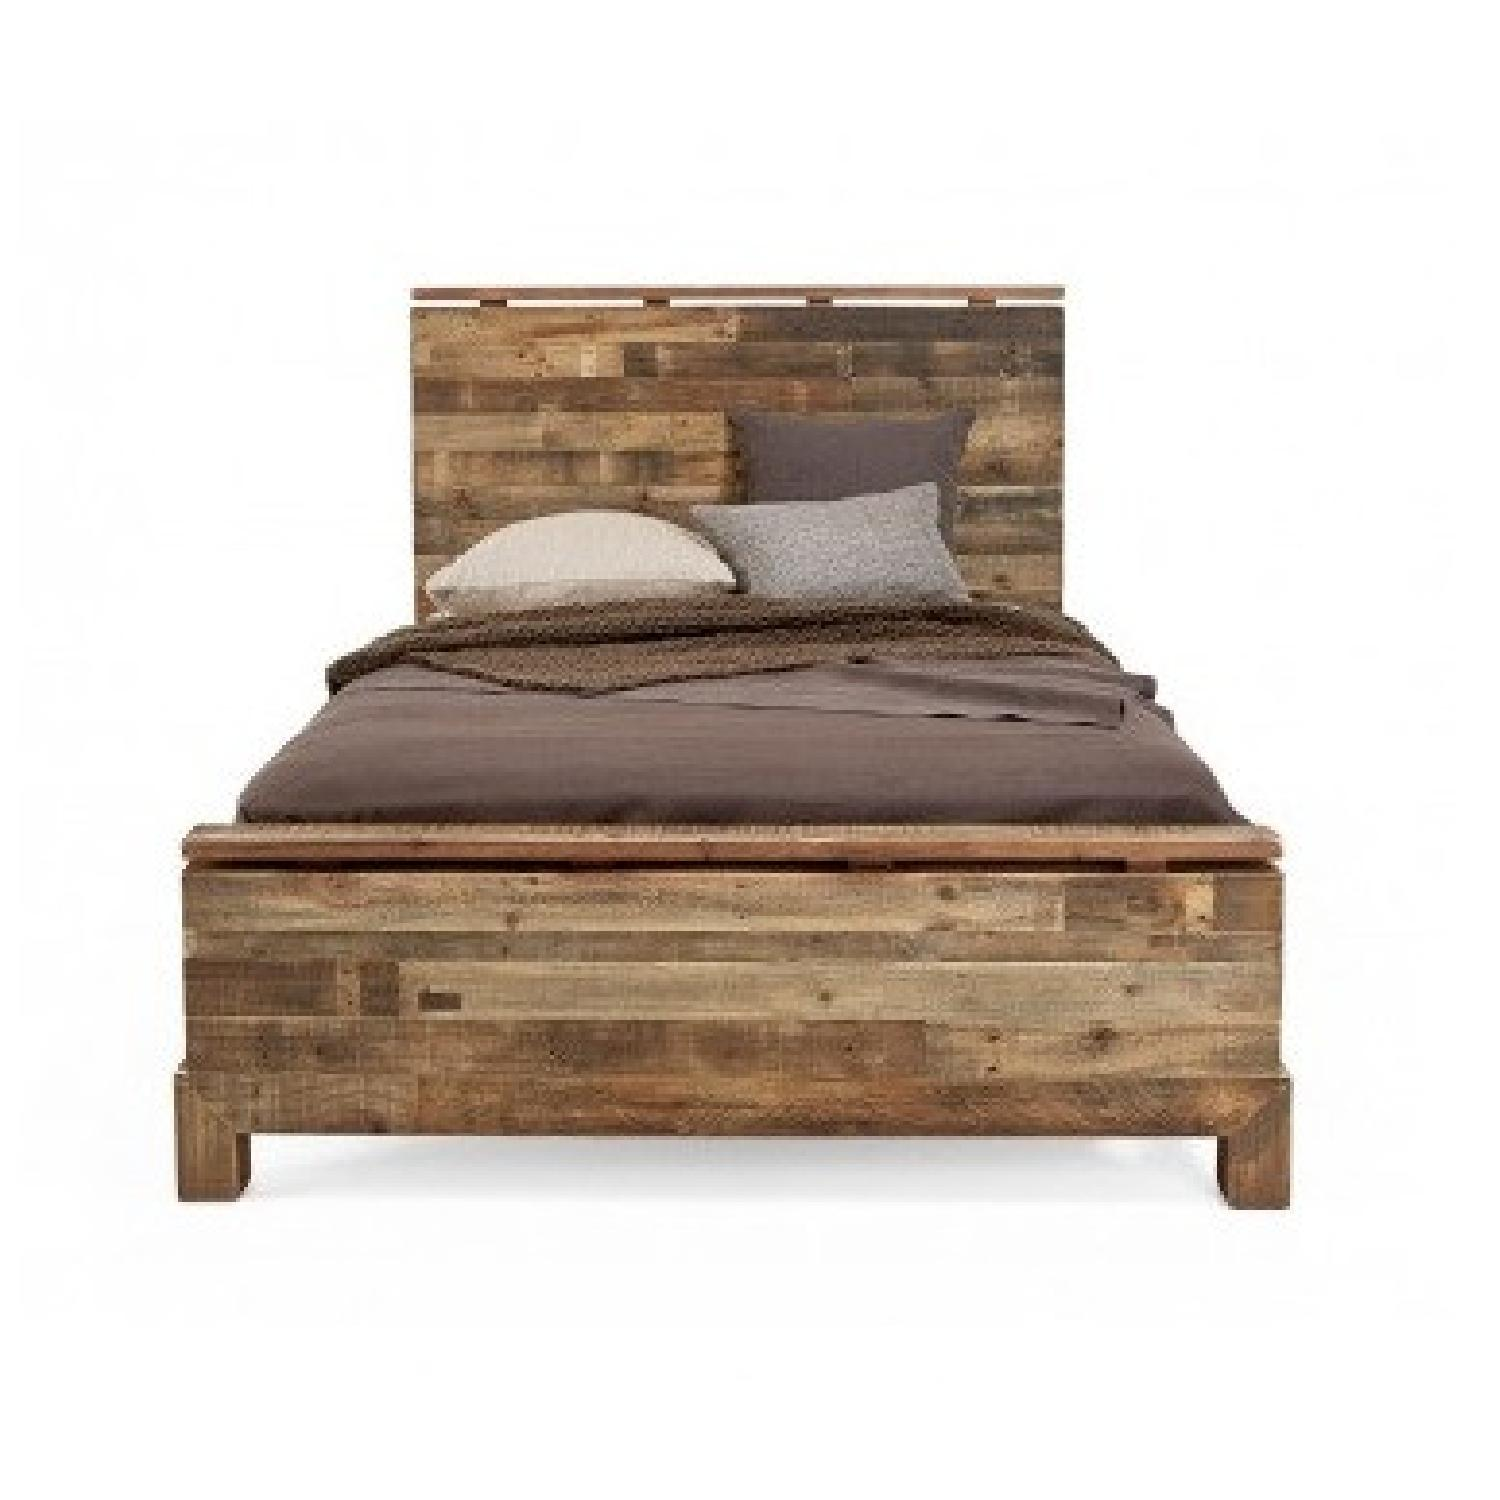 ABC Carpet and Home Reclaimed Wood Queen Bed